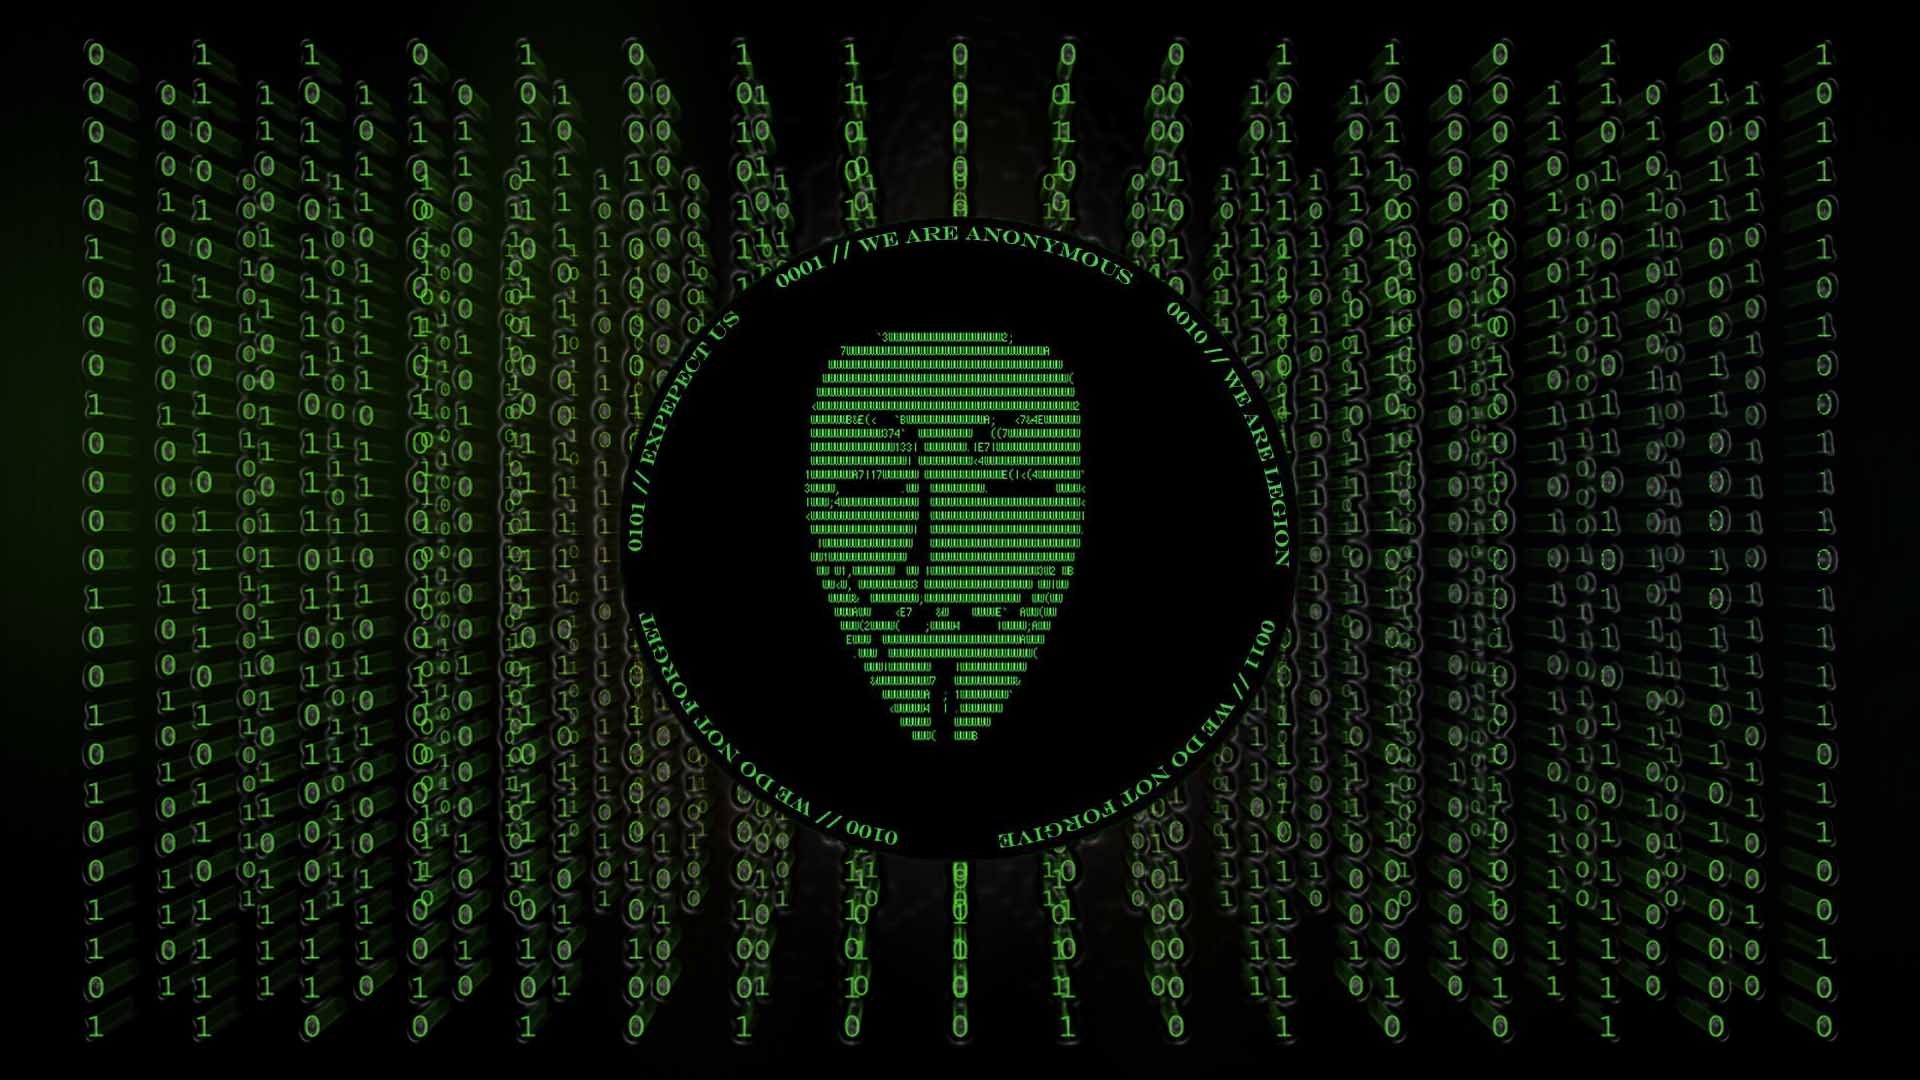 Anonymous Hackers wallpaper 106791 1920x1080